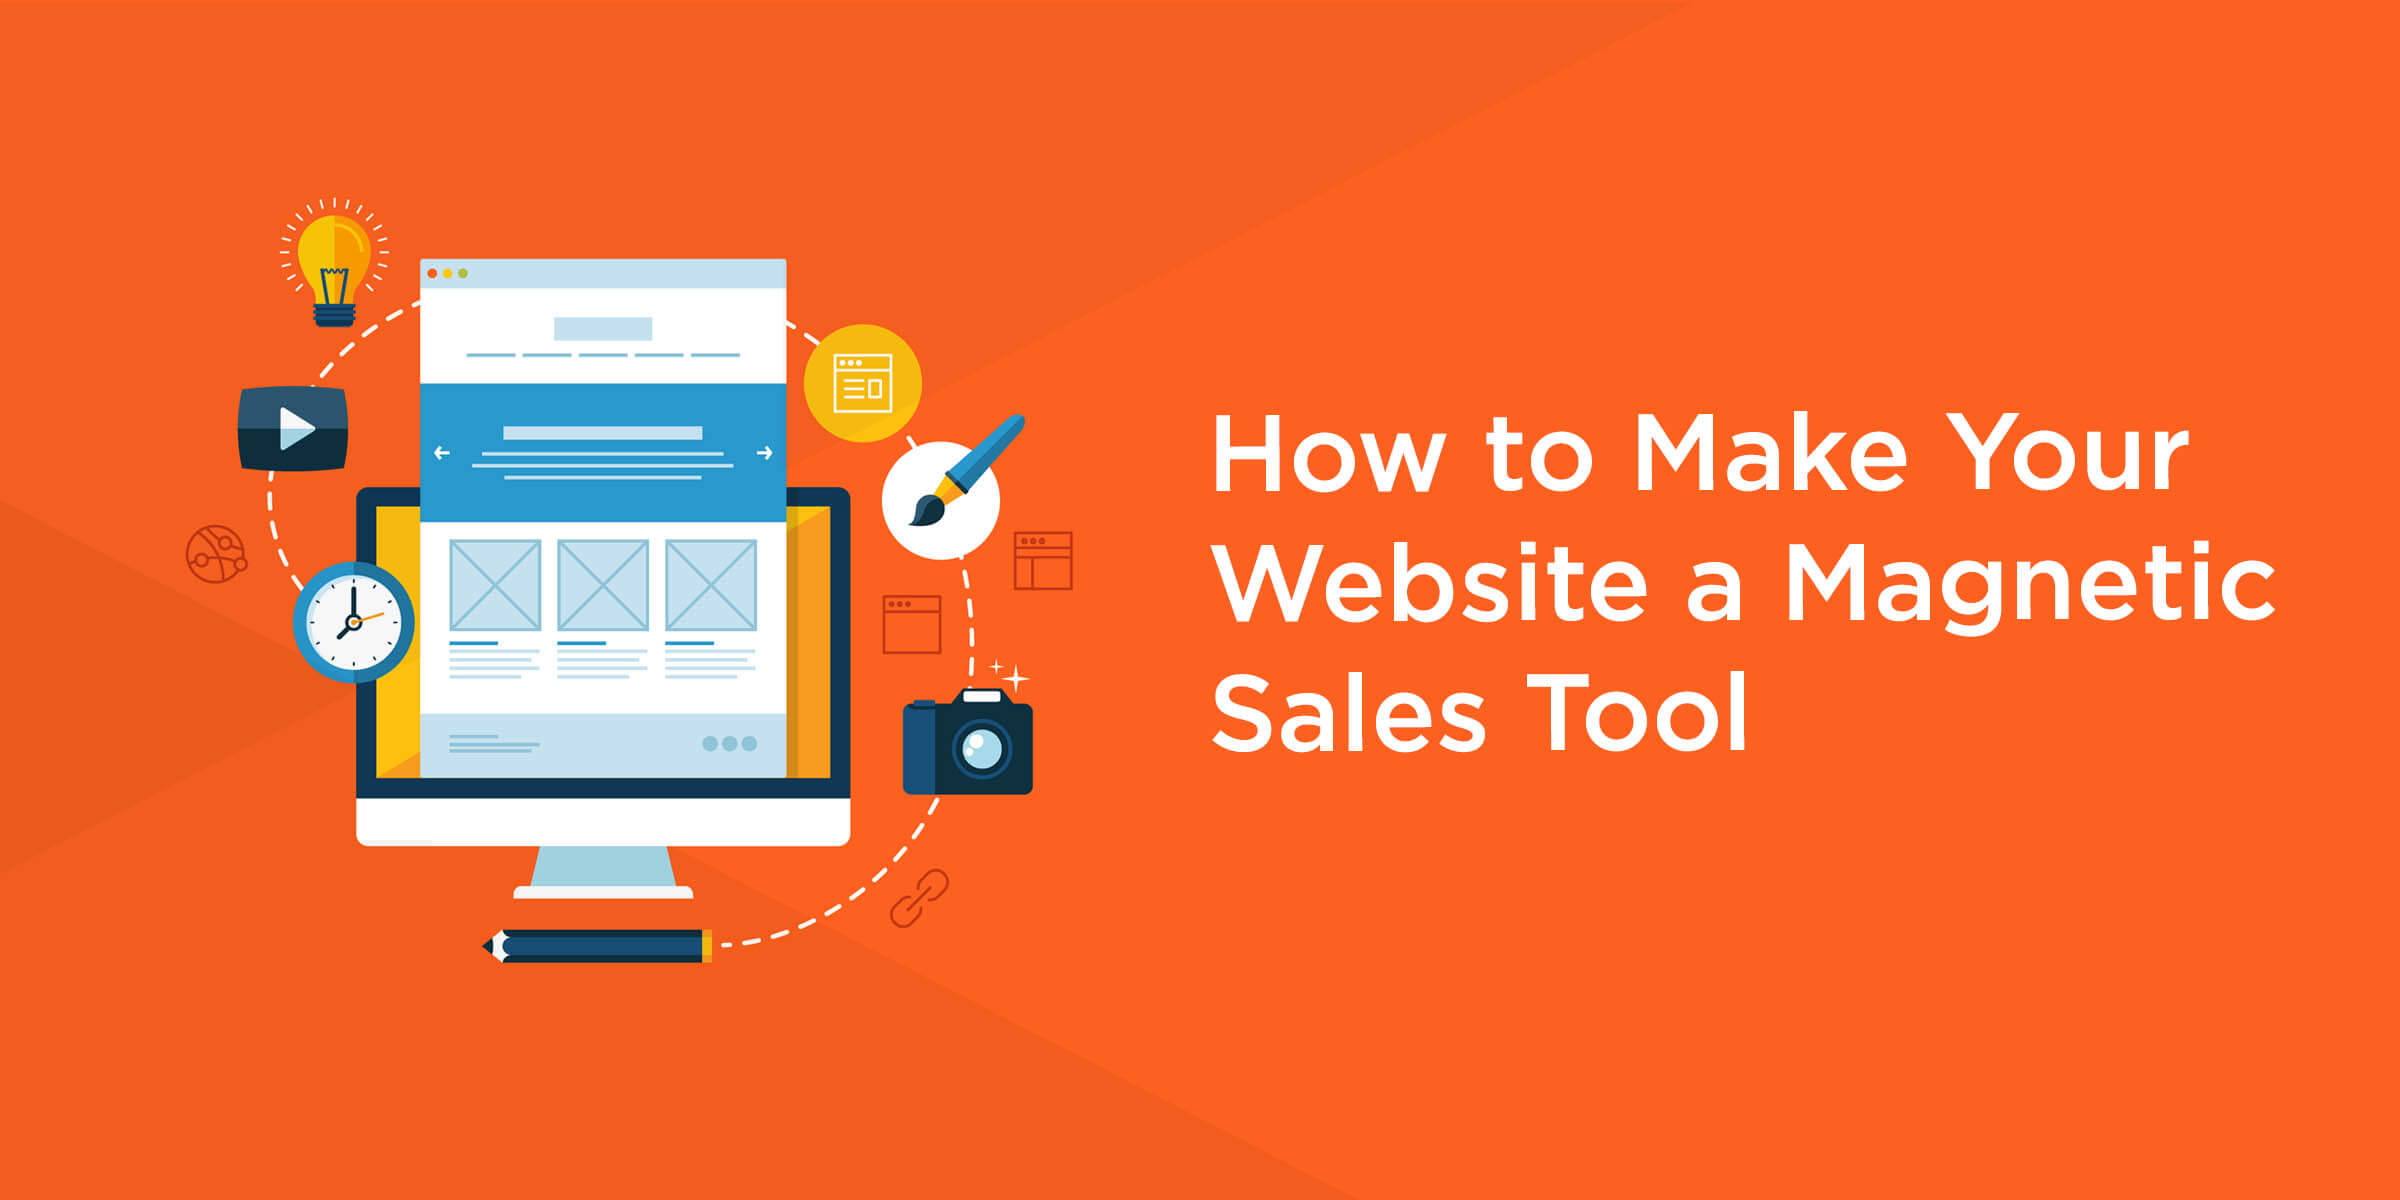 How to Make Your Website a Magnetic Sales Tool – McBreen Marketing